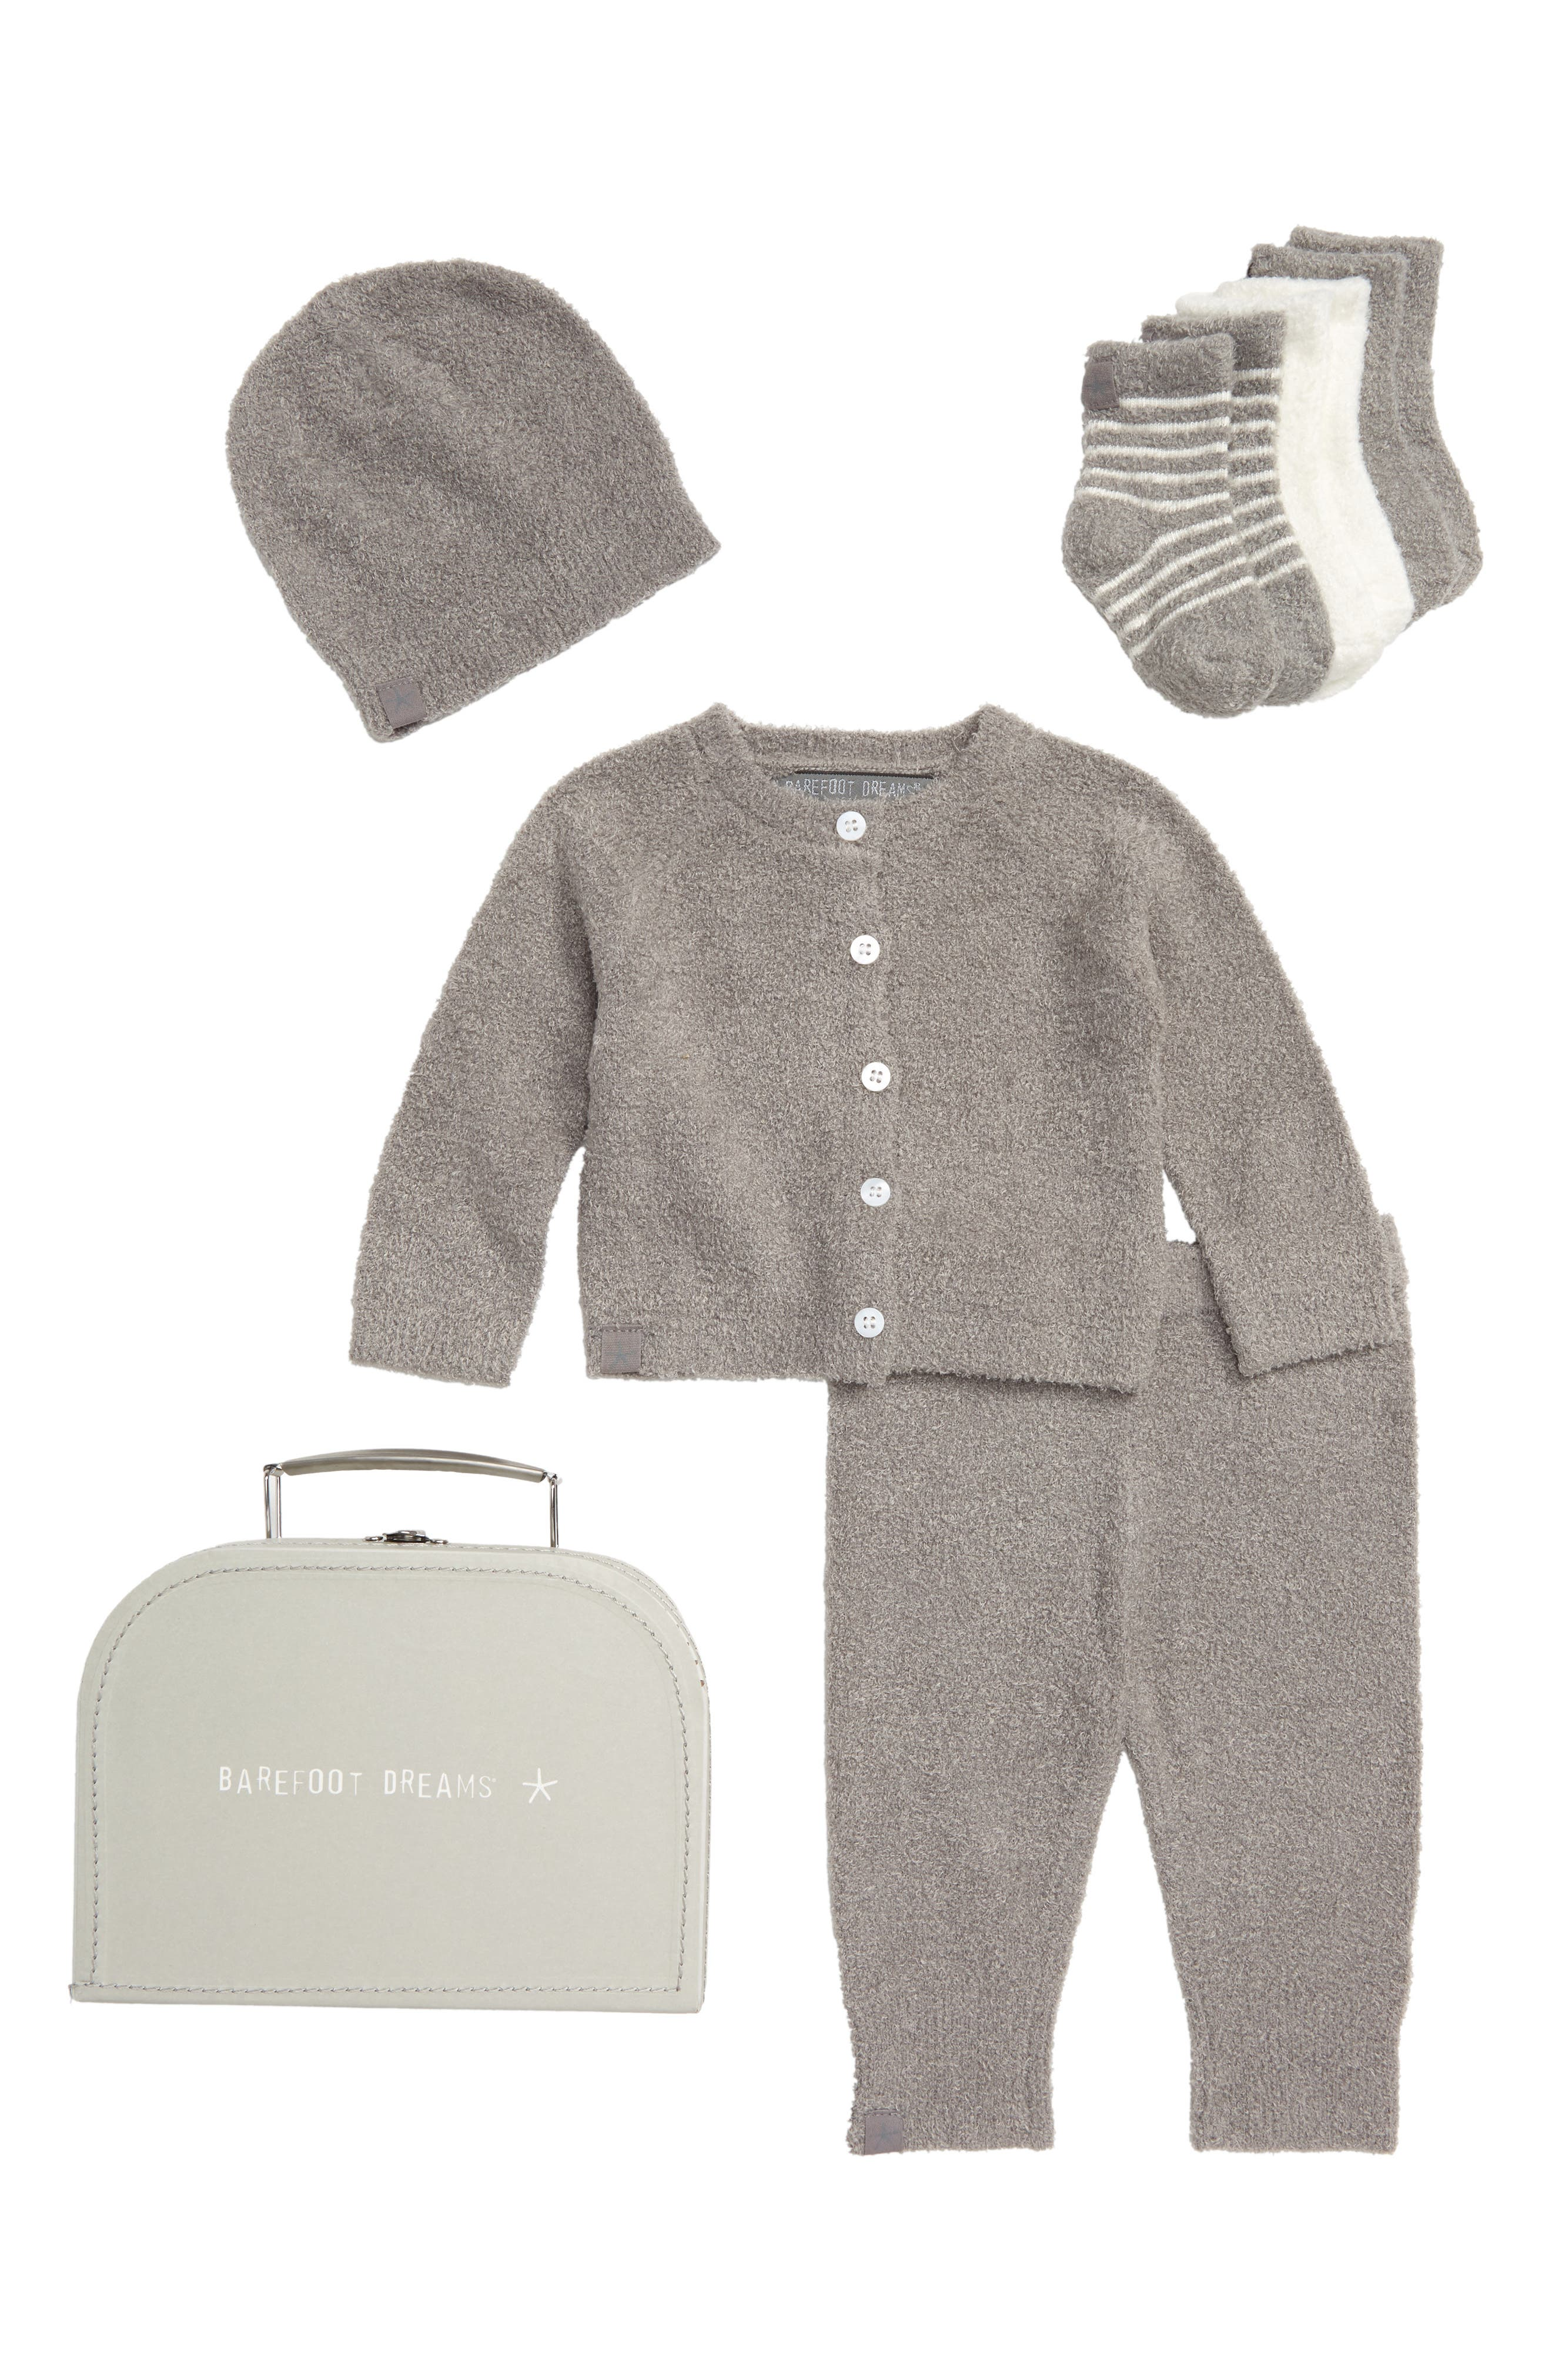 BAREFOOT DREAMS<SUP>®</SUP>, CozyChic<sup>®</sup> Lite Classic Cardigan, Pants, Socks, Beanie & Suitcase Set, Main thumbnail 1, color, PEWTER